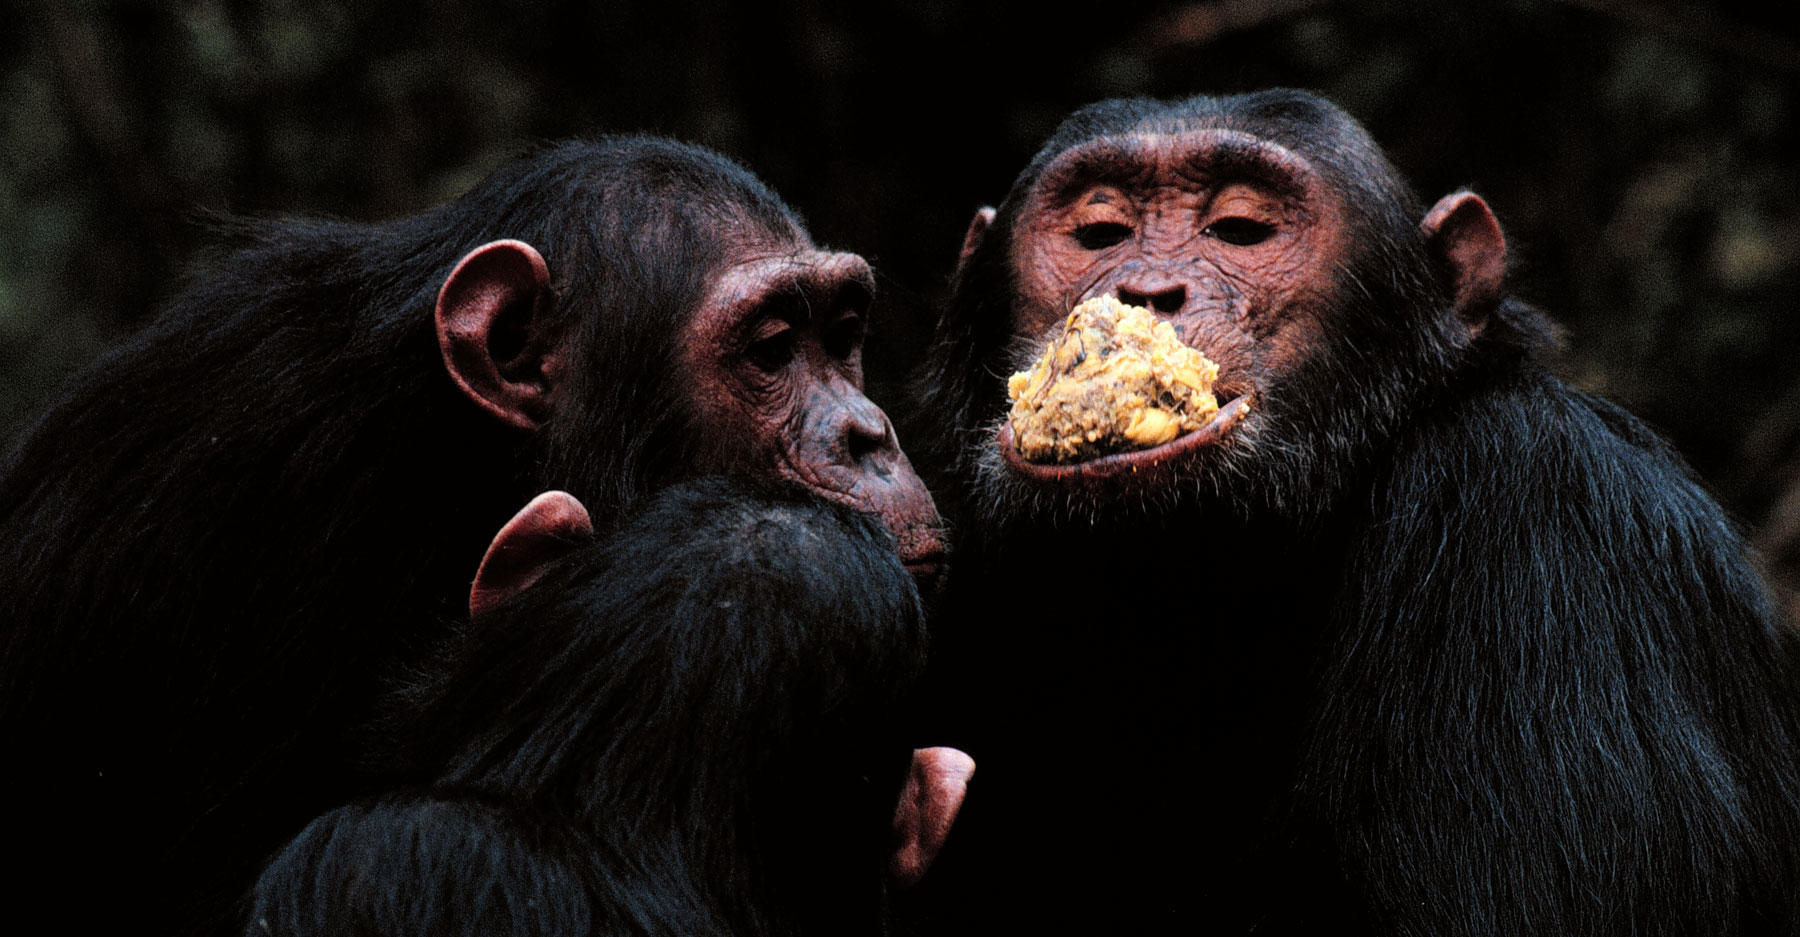 Three chimps eating